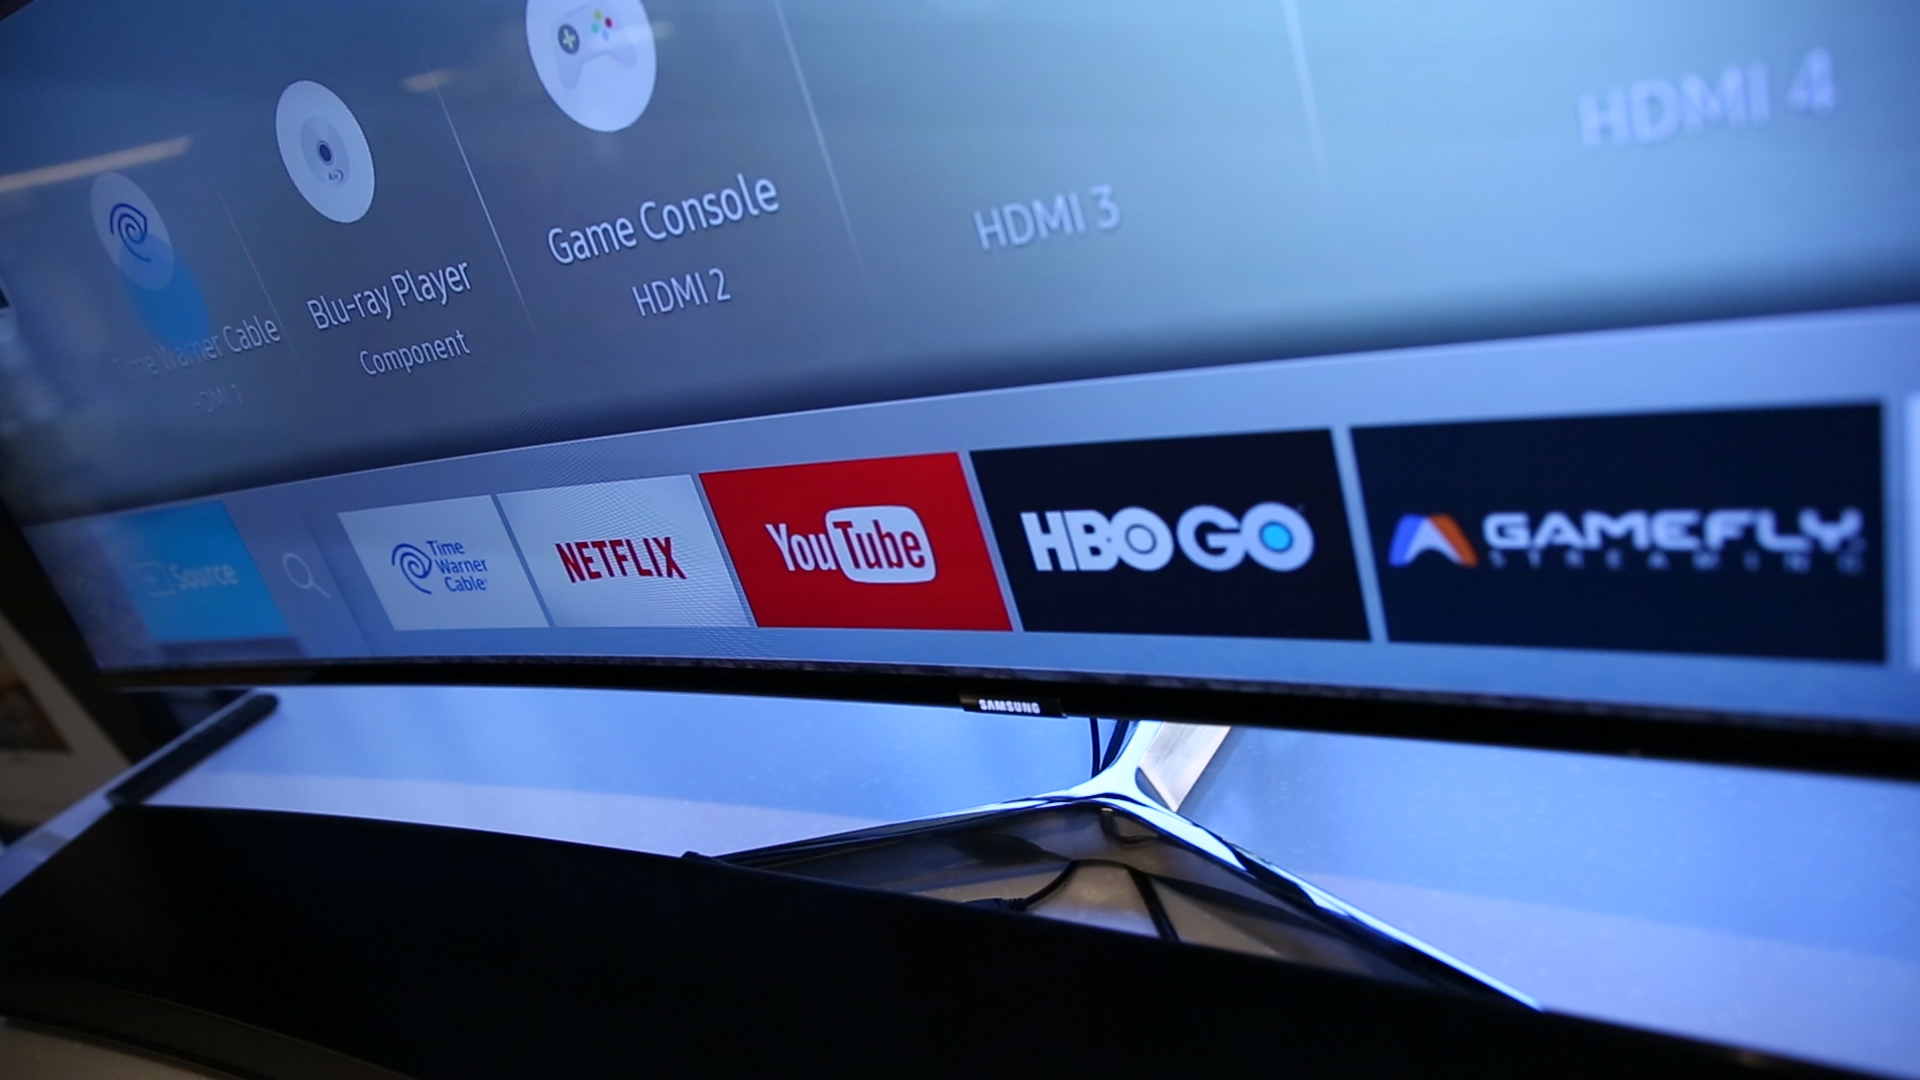 Samsung's smart TVs control your gear, from cable box to thermostat